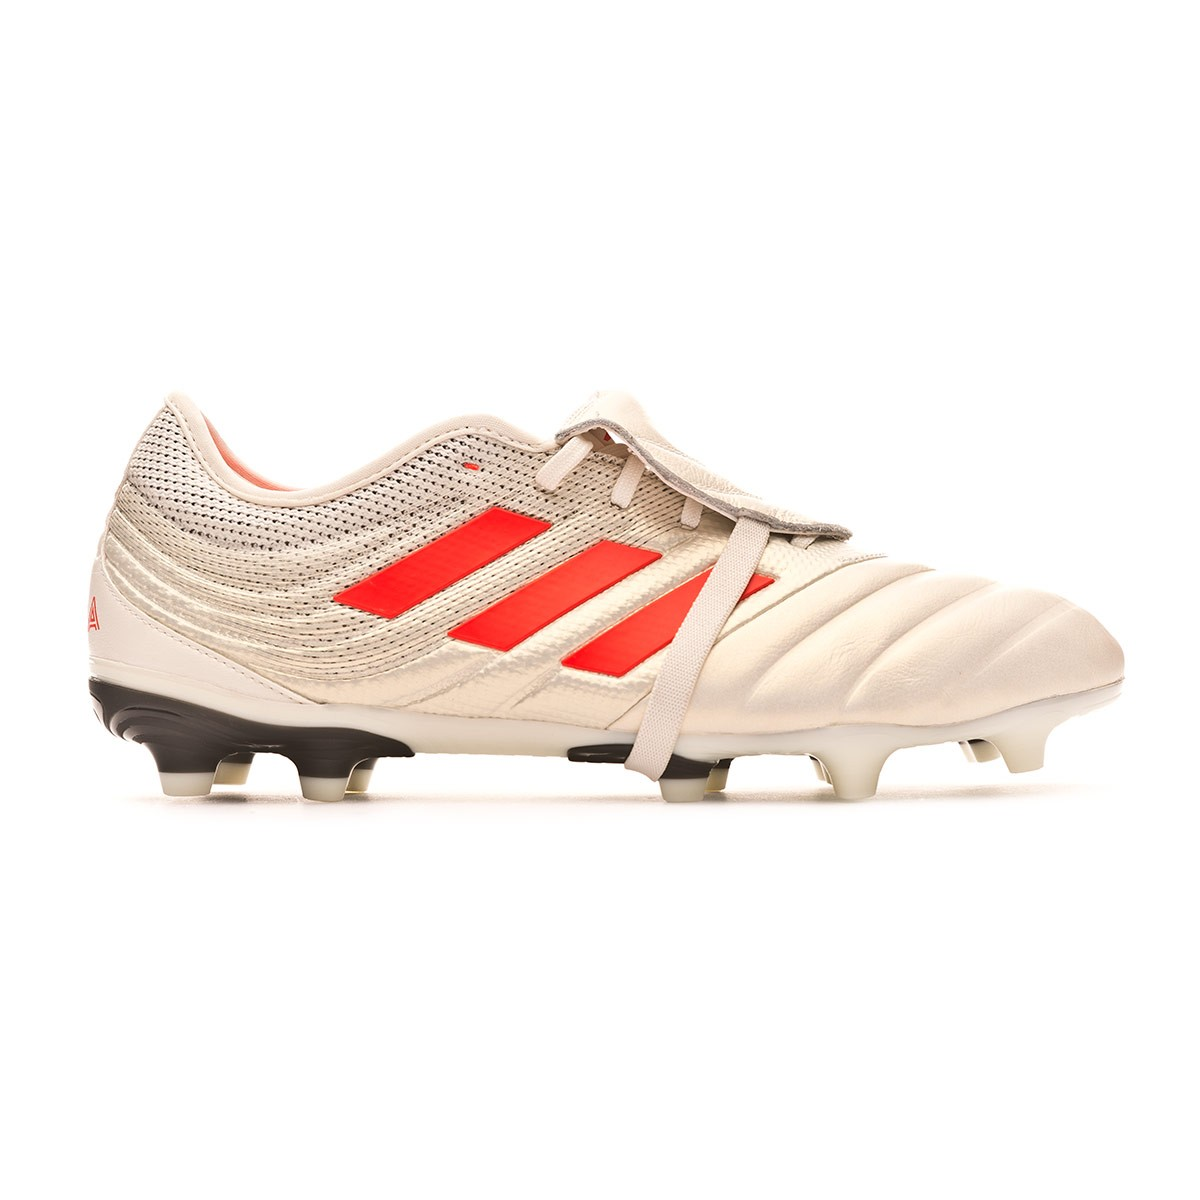 13fda59d5 Football Boots adidas Copa Gloro 19.2 FG Off white-Solar red-Core black -  Football store Fútbol Emotion